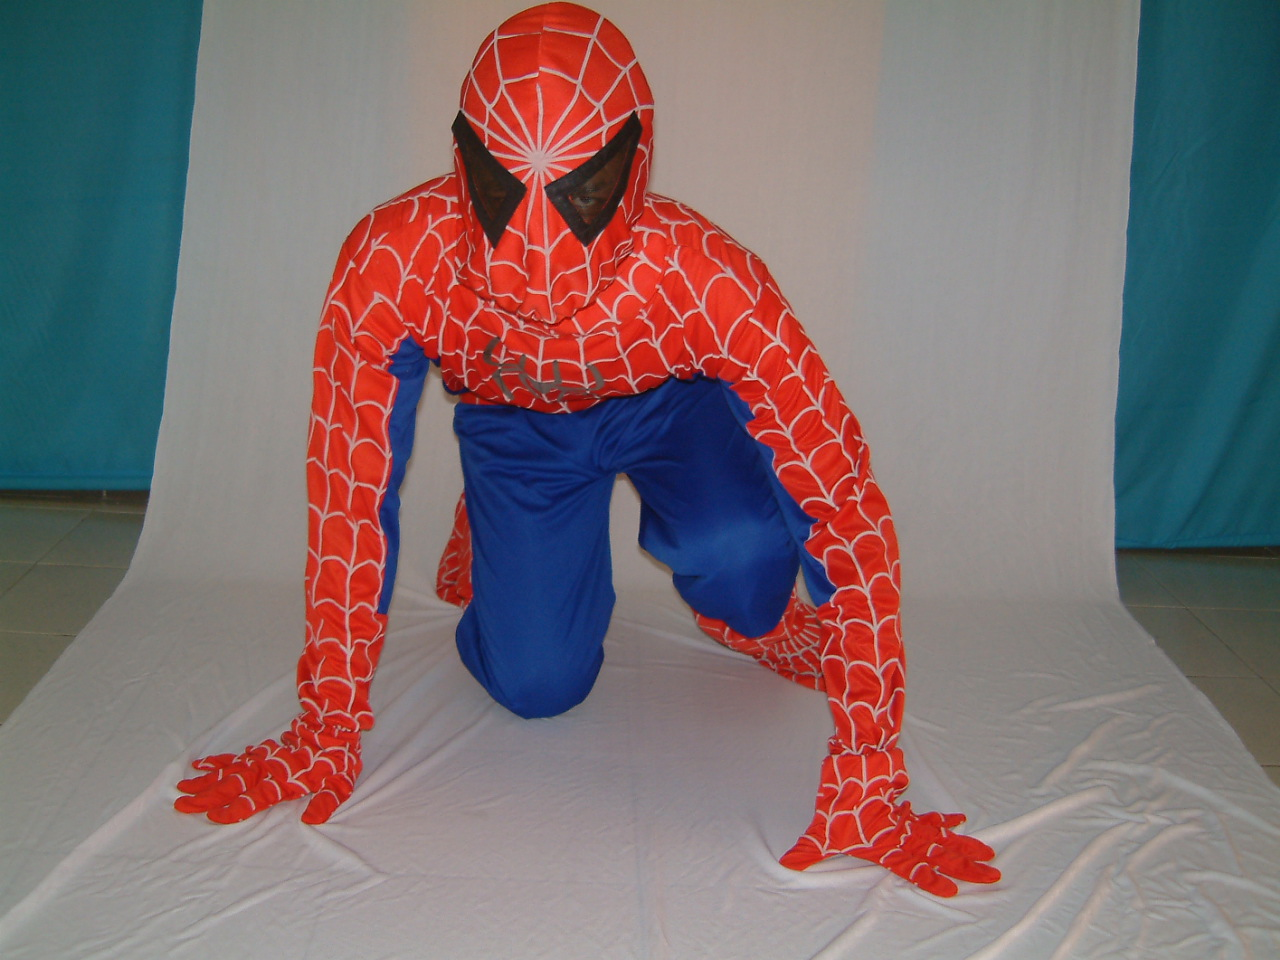 Siderman 2